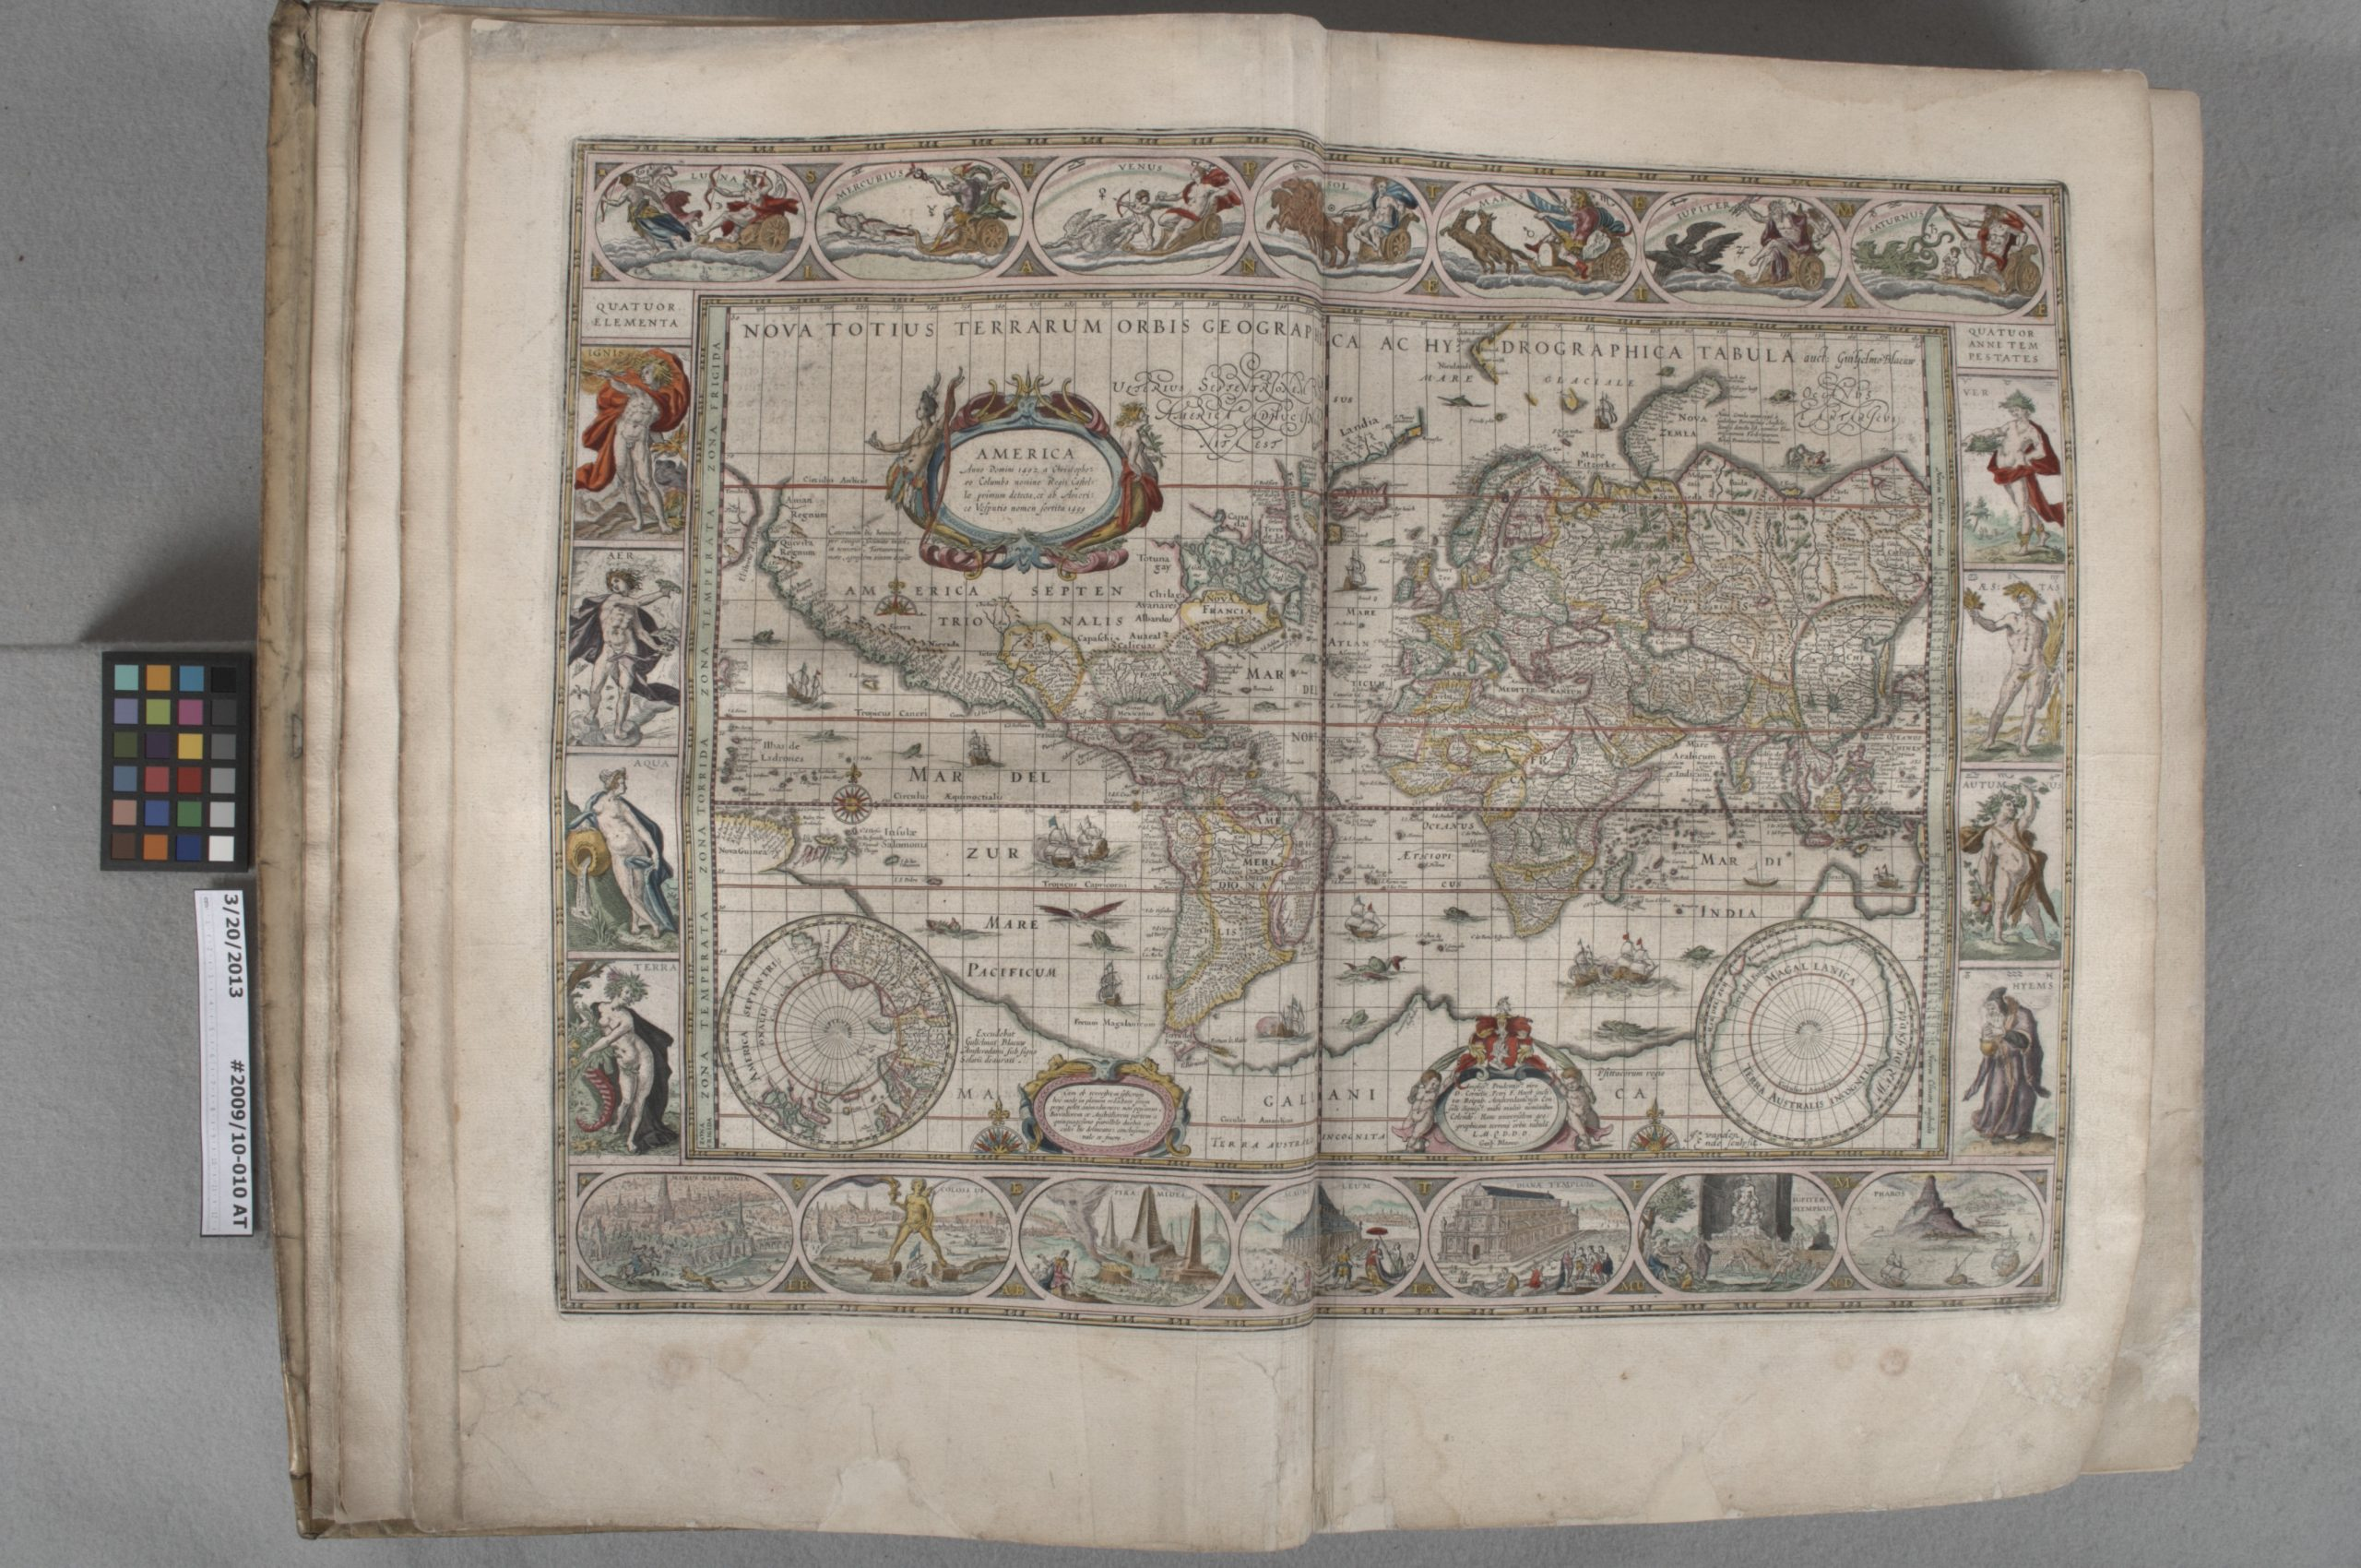 Elaborate printed map showing an early depiction of North and South America